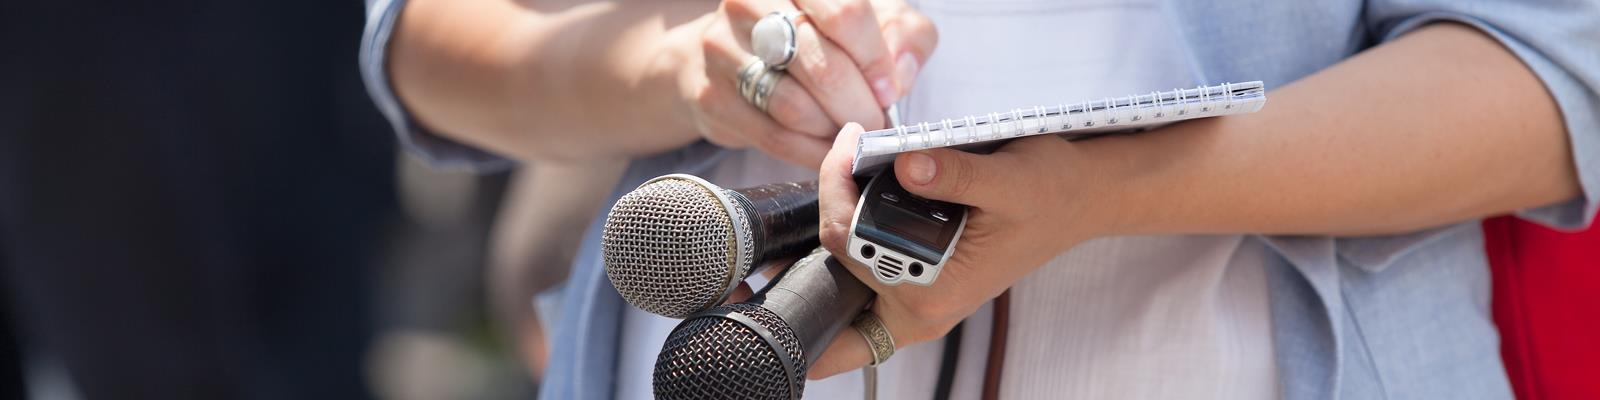 Close up of journalist holding microphone and note book while taking notes